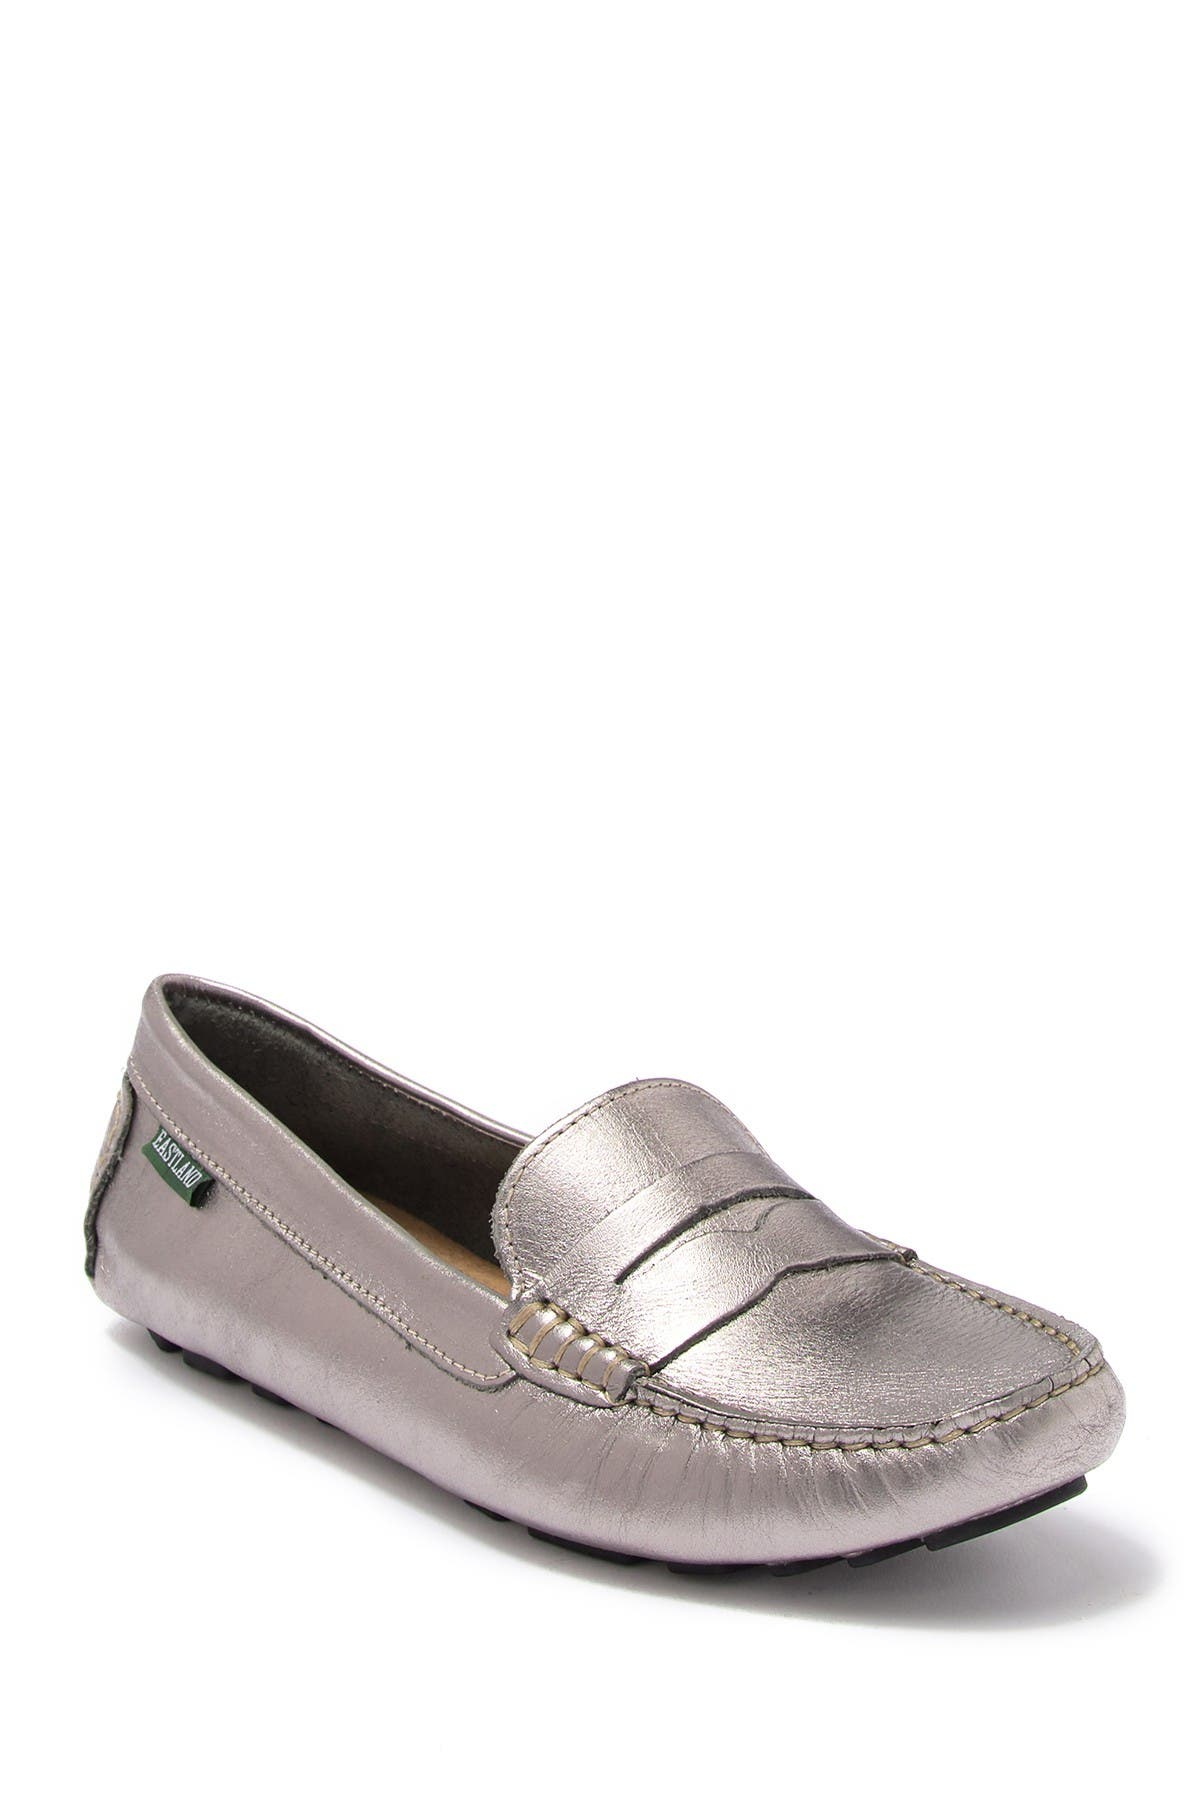 Image of Eastland Patricia Leather Loafer